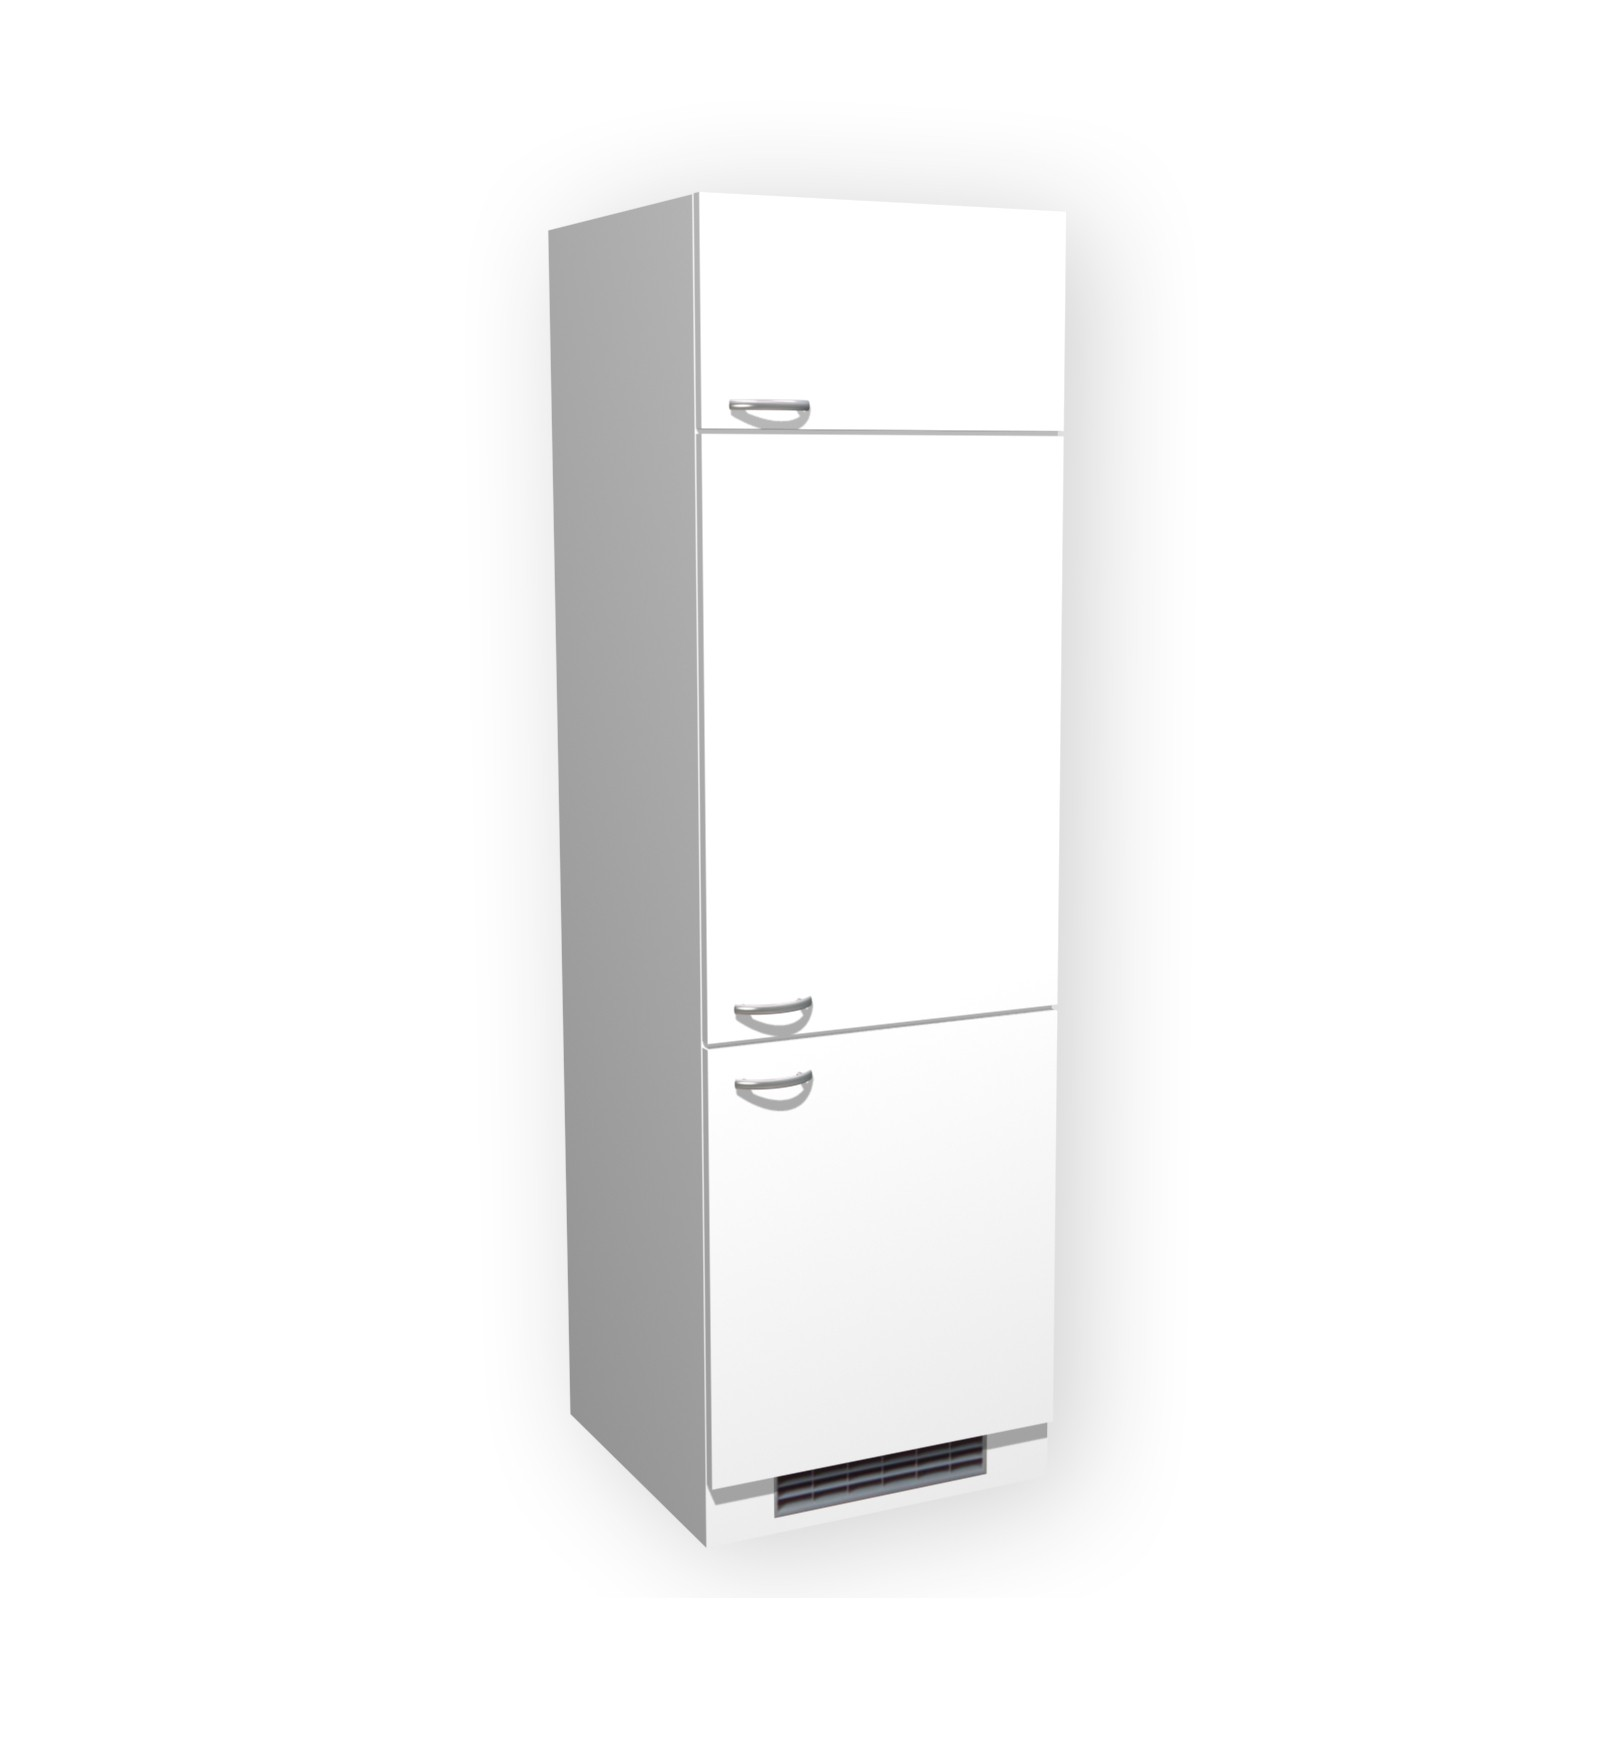 k hlschrankumbau schrank unna umbauschrank k chenschrank k chenm bel 60 cm weiss ebay. Black Bedroom Furniture Sets. Home Design Ideas